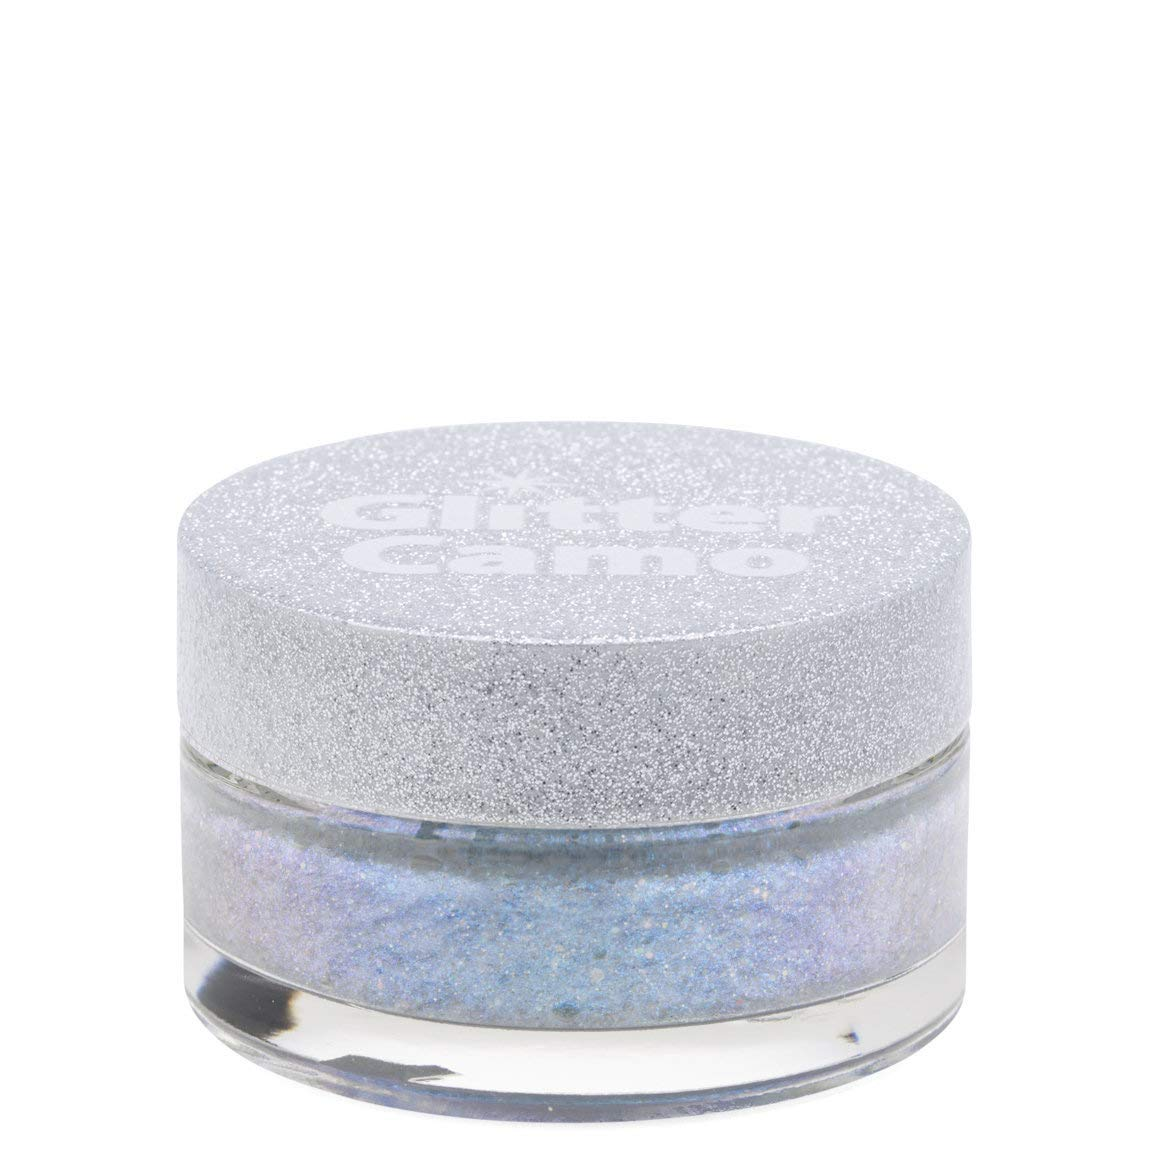 Lit Cosmetics Glitter Camo (Commader in Glitter) by Lit